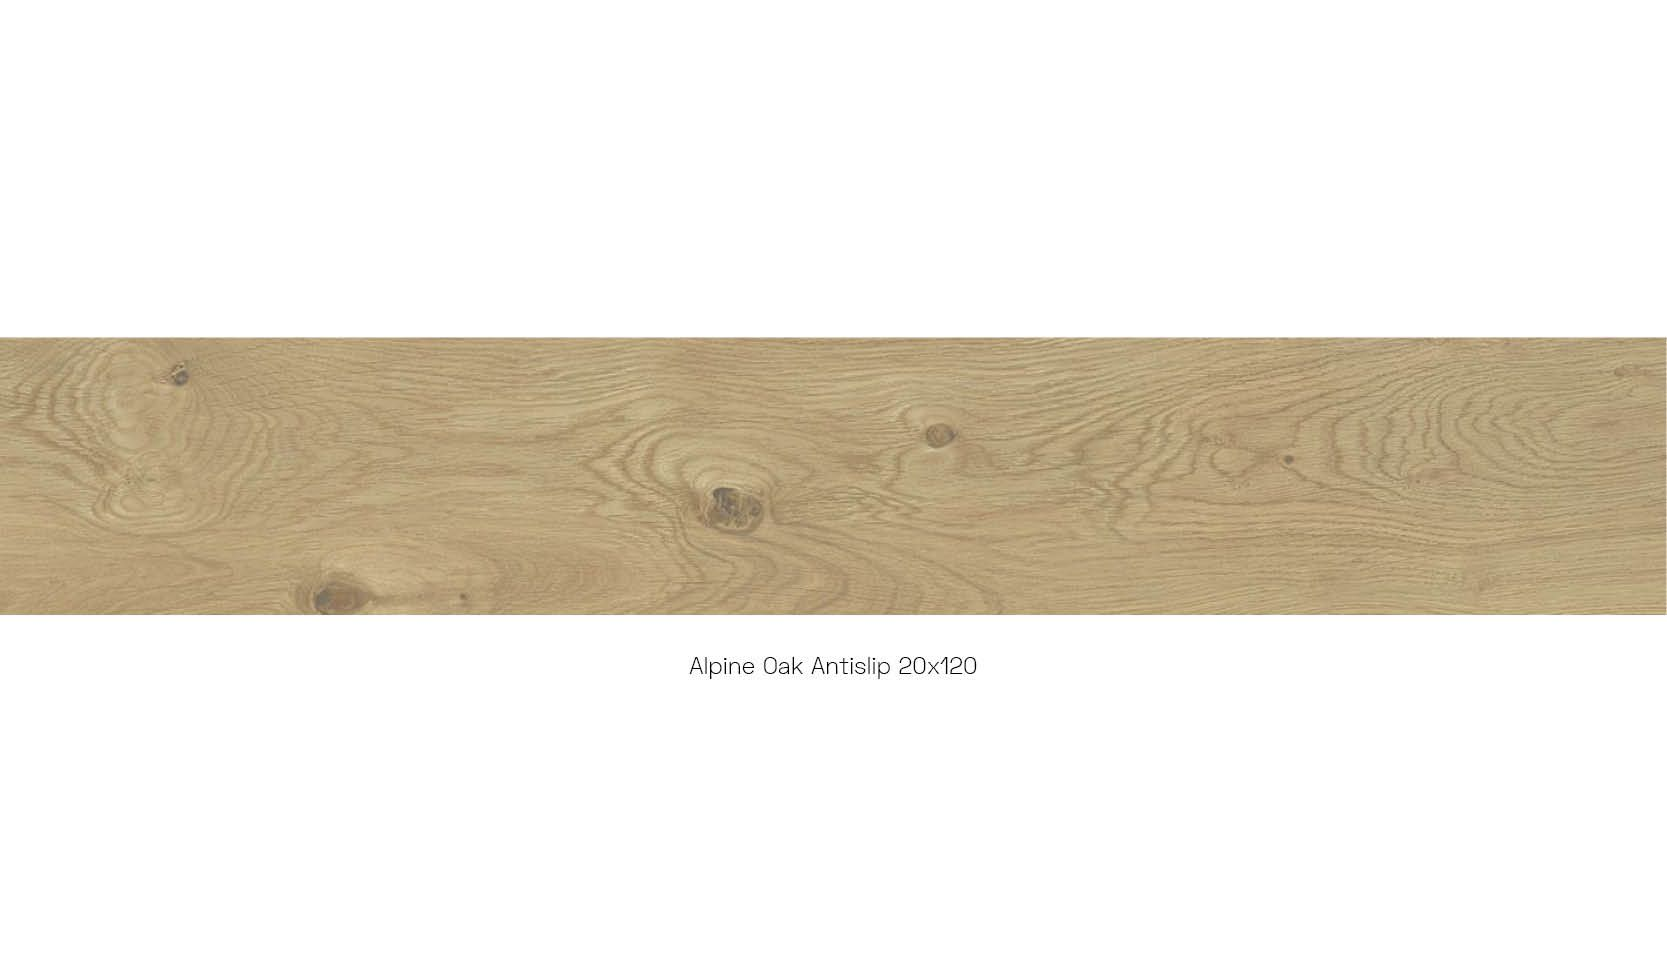 Alpine oak antislip 20 x 120